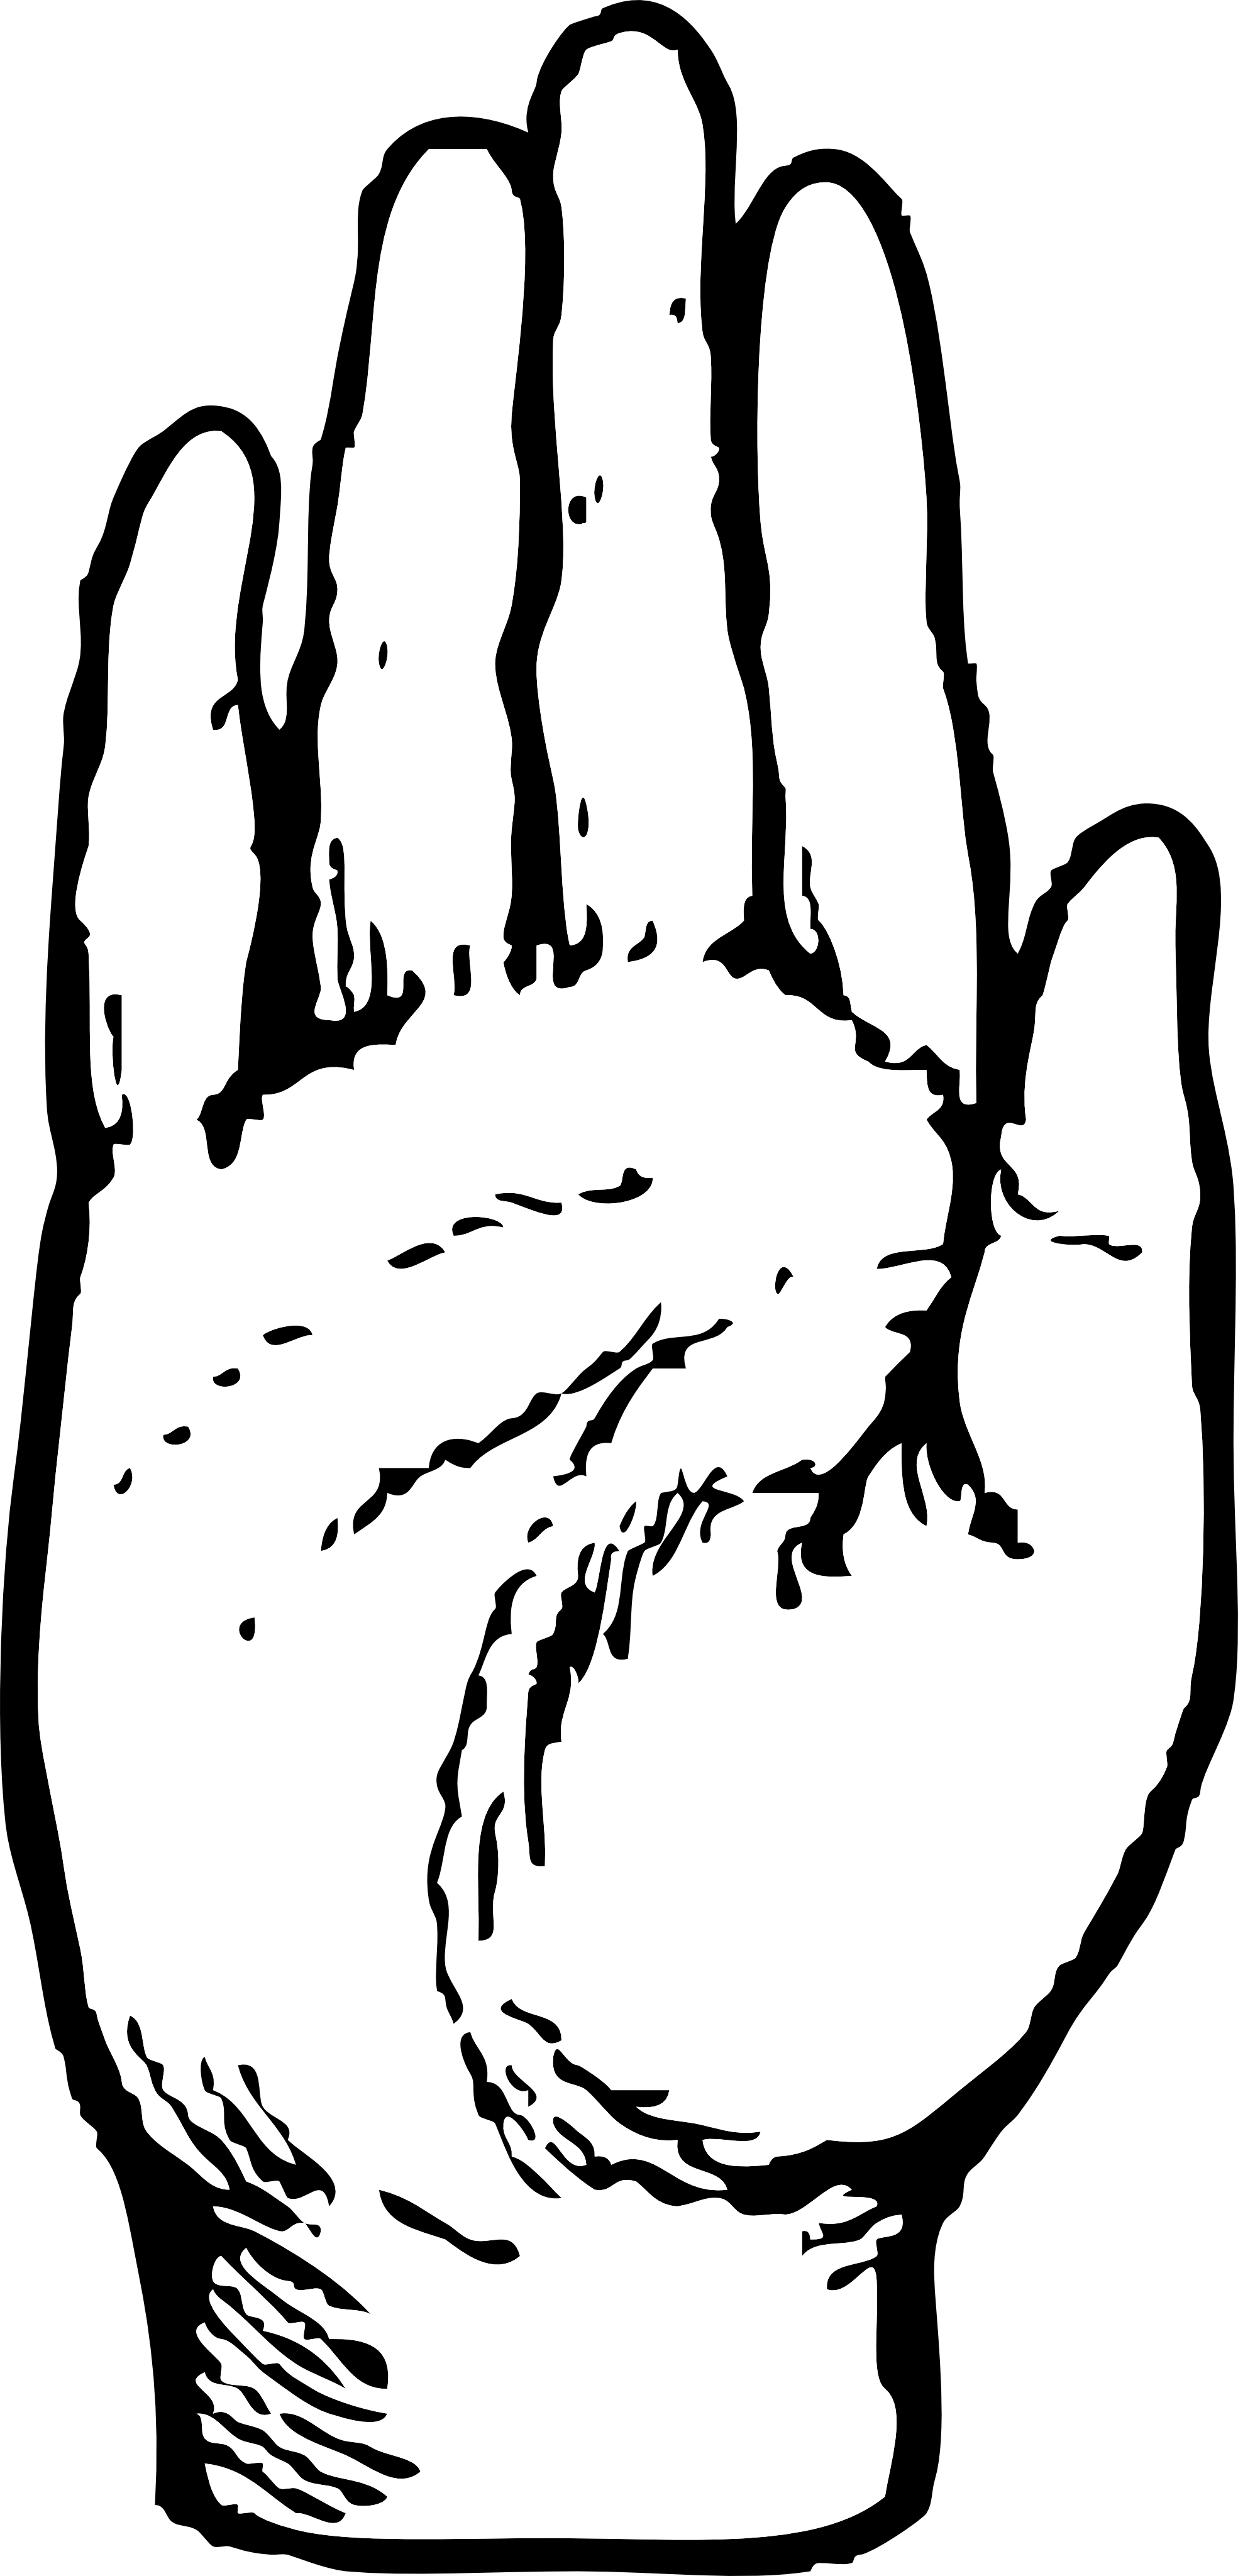 1969x4098 Hand Clipart Black And White Clipart Panda